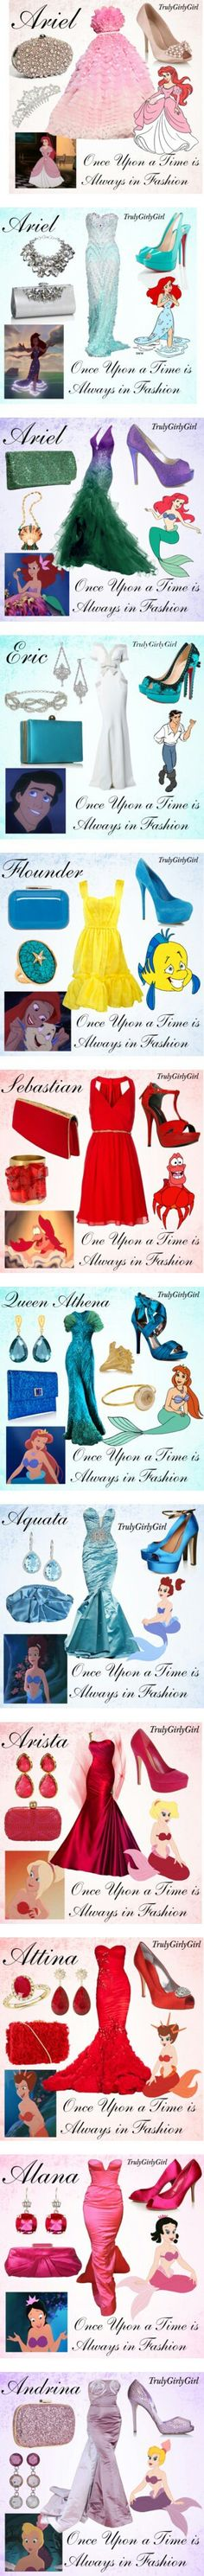 """Disney Style: The Little Mermaid"" by trulygirlygirl. My favorite is the Queen Athena outfit. Disney Outfits, Disney Inspired Outfits, Themed Outfits, Disney Dresses, Disney Style, Cute Outfits, Prom Dresses, Disney Clothes, Fashion Fantasy"